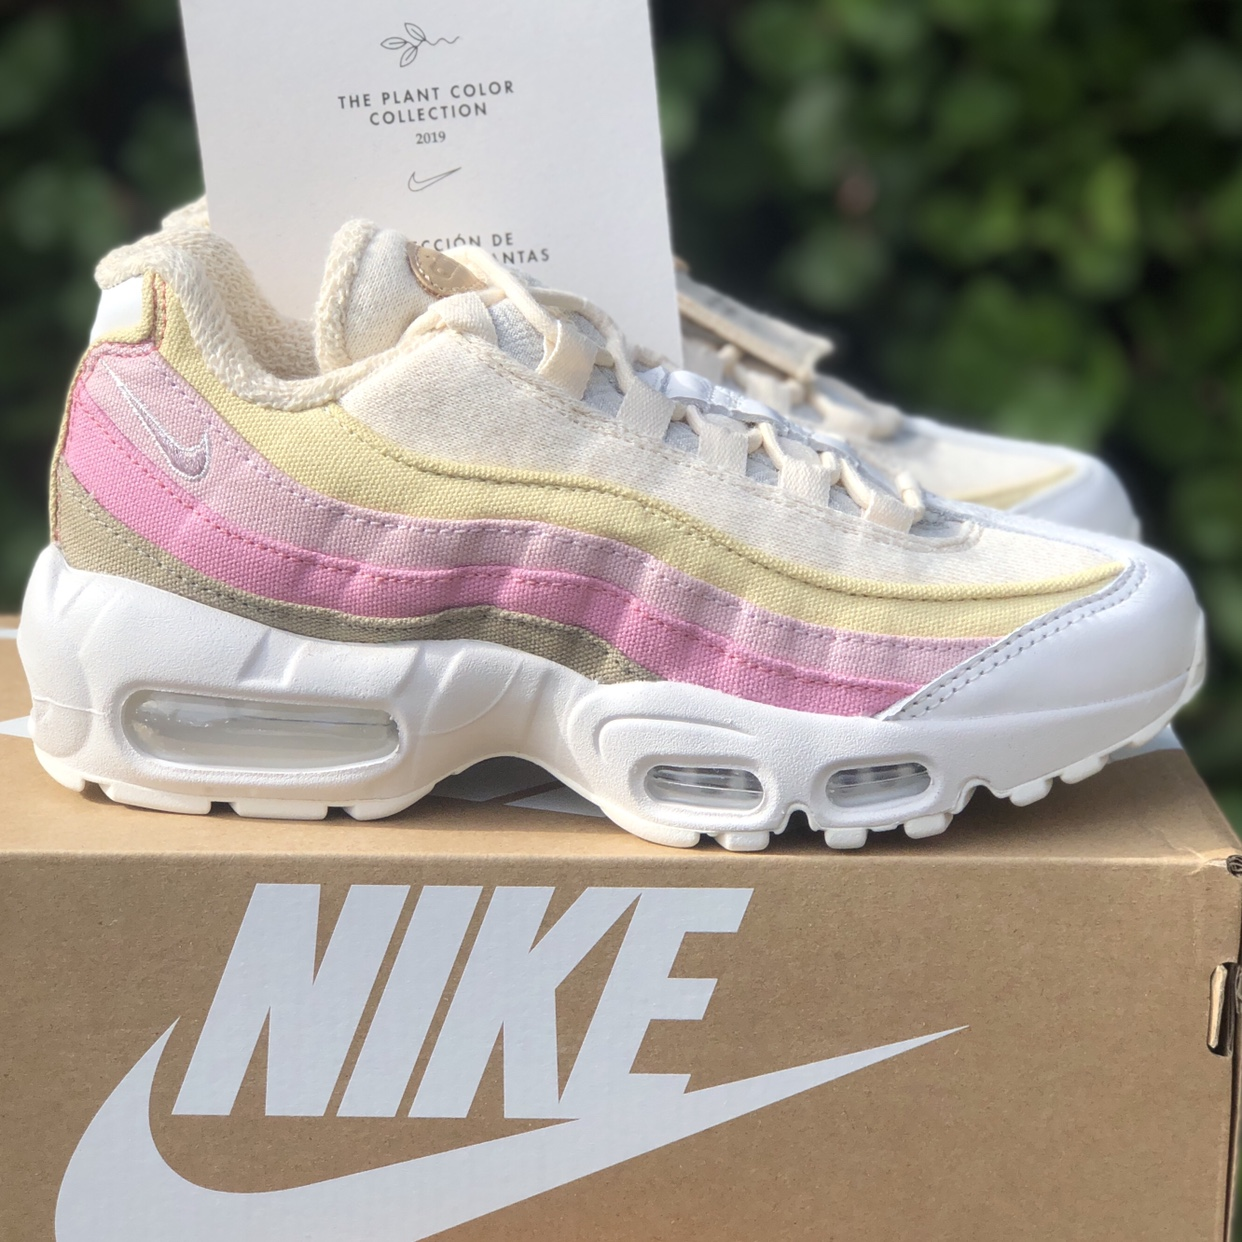 nike air max 95 qs plant color collection